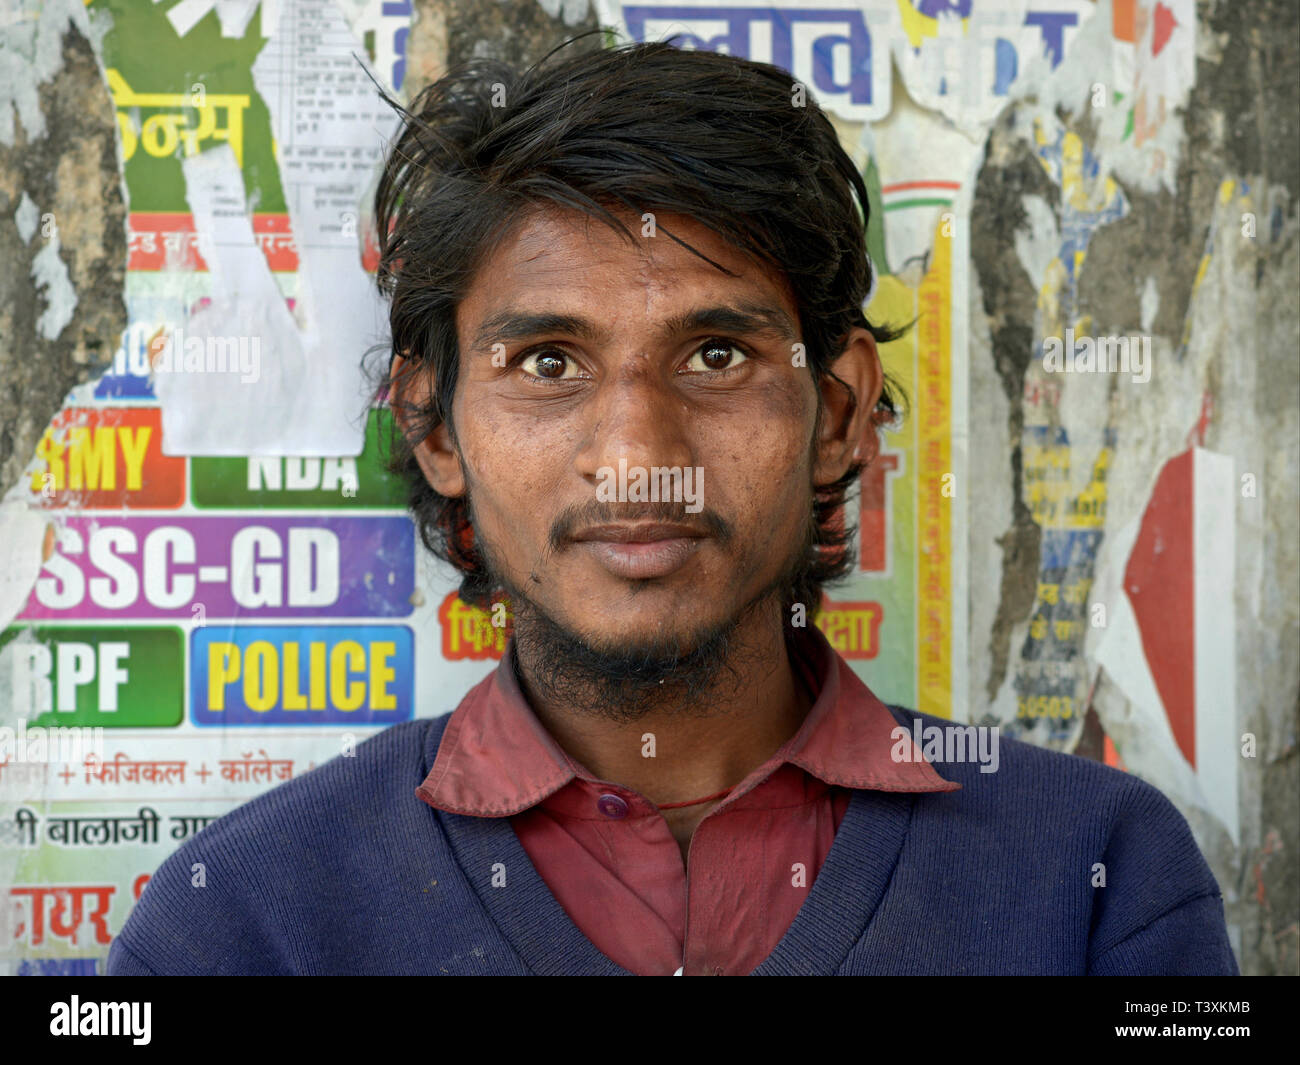 Scruffy, young Indian dalit man poses for the camera in front of a weathered poster wall. - Stock Image